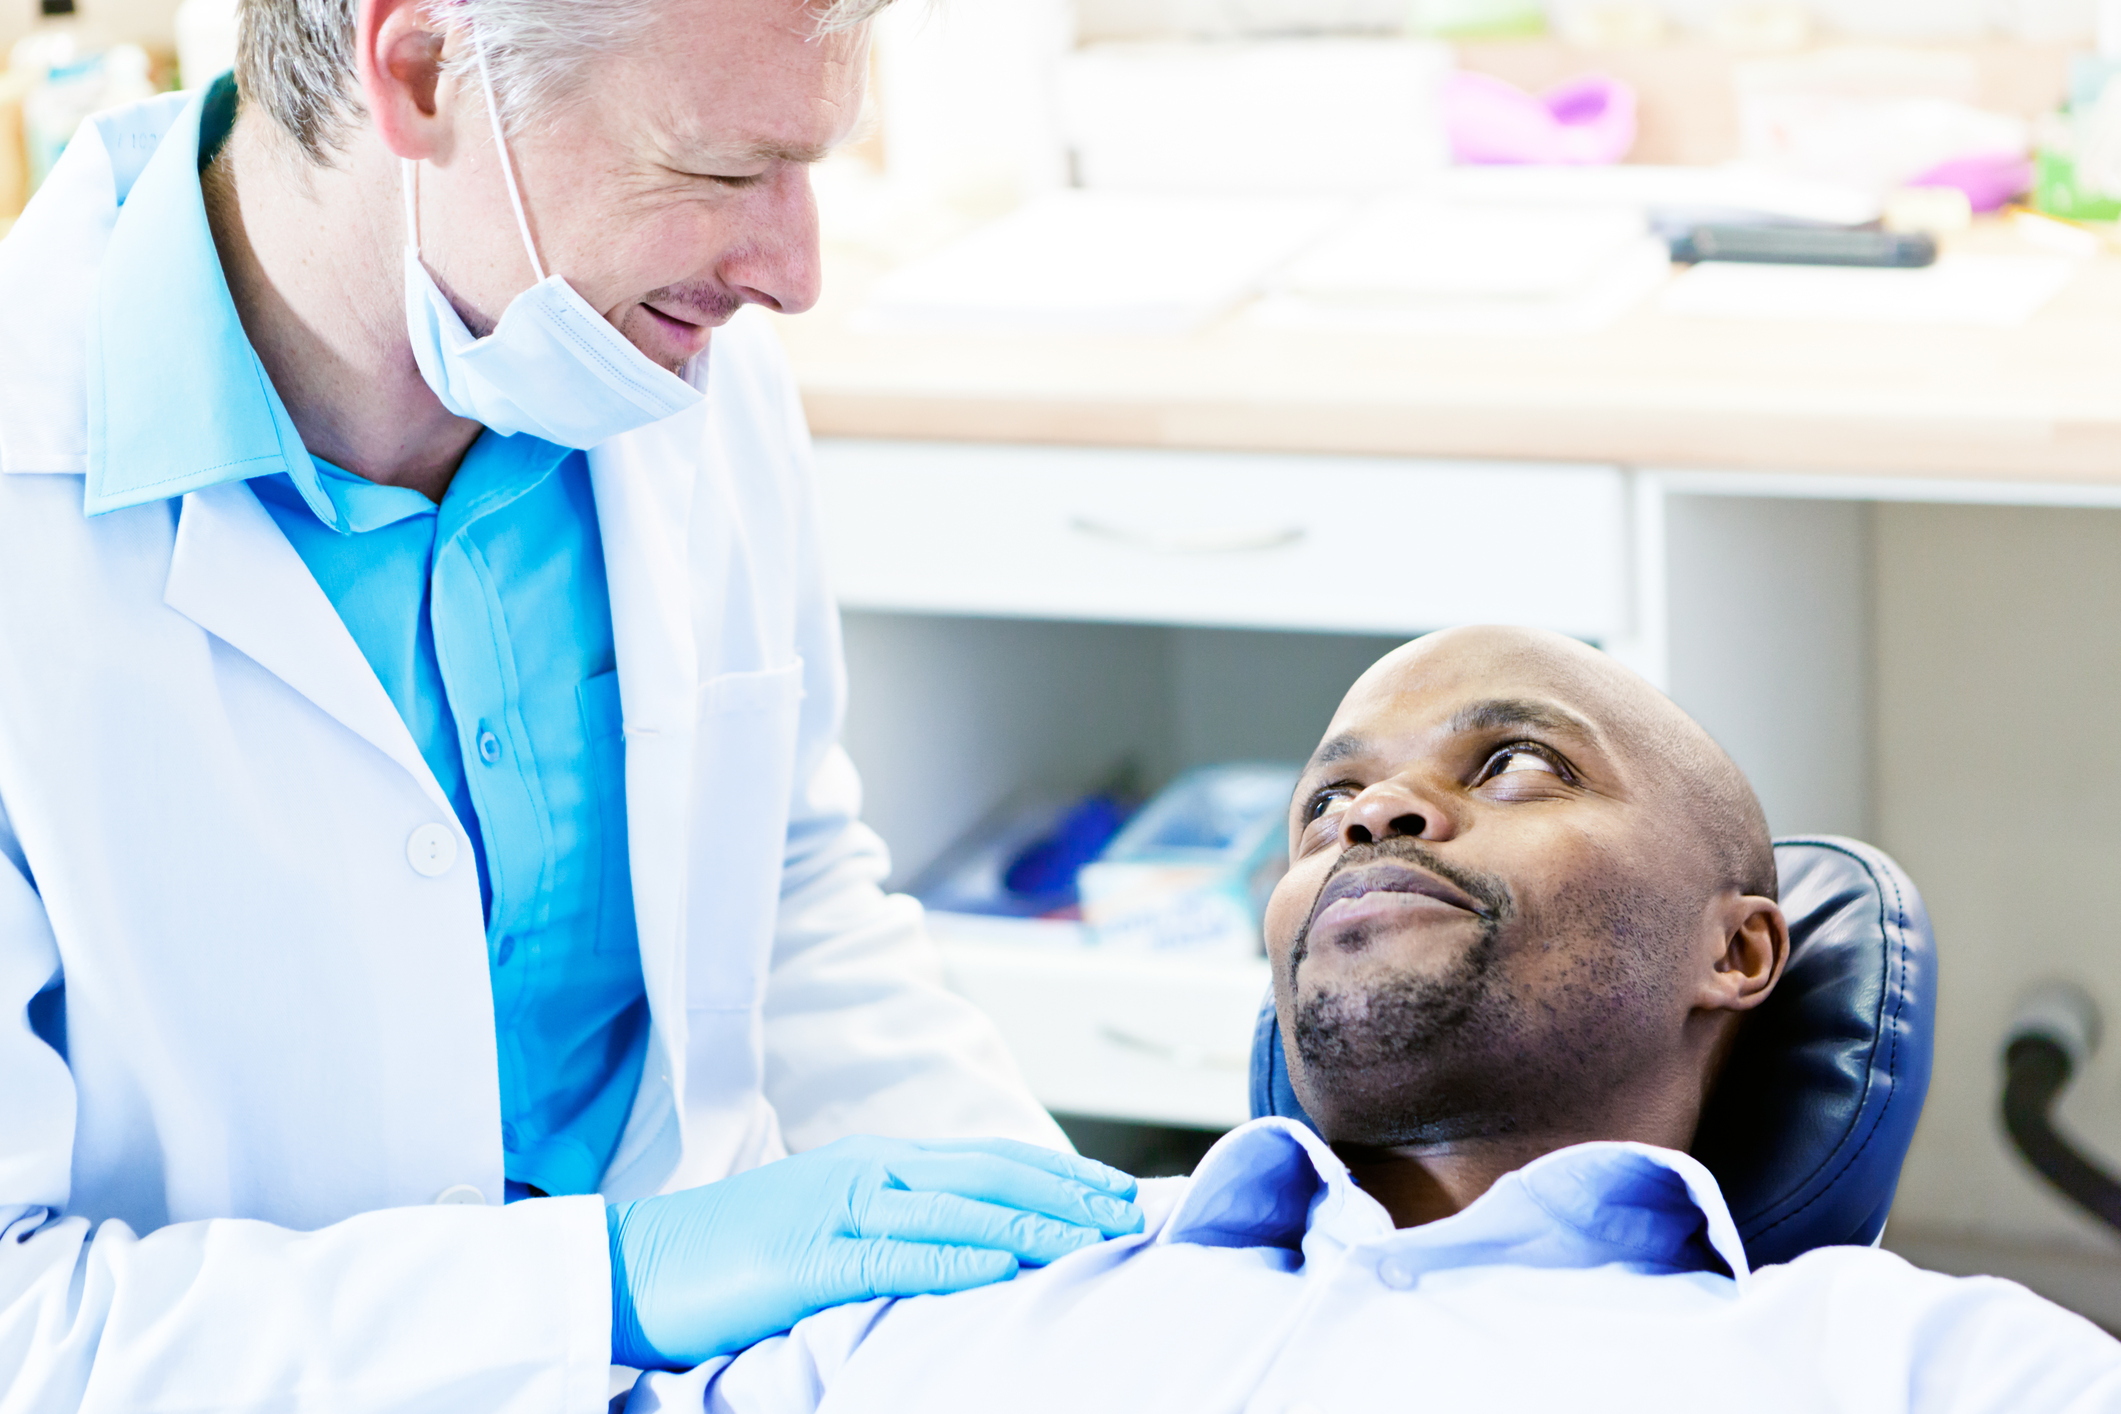 Smiling dentist reassures male dental patient in the chair